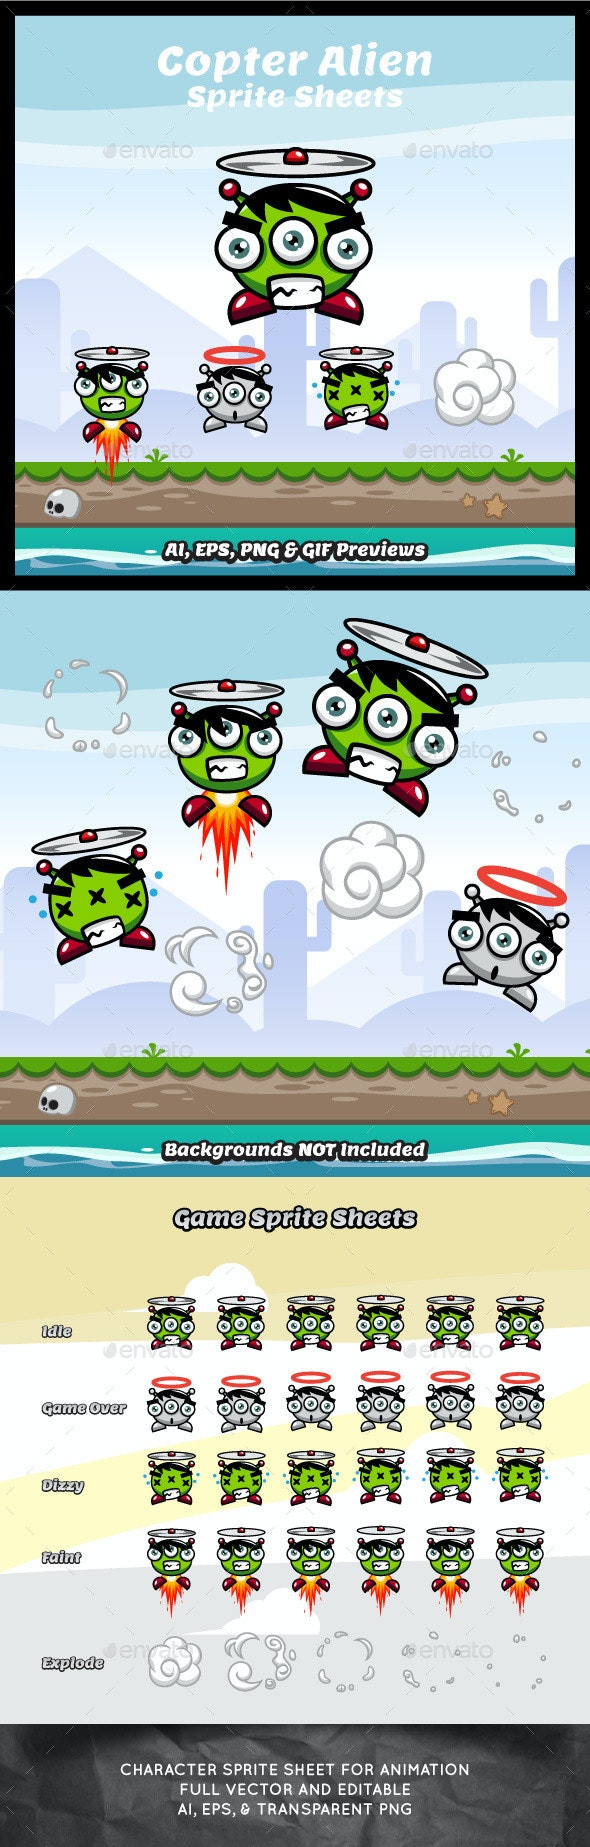 Copter Alien Game Character Sprite Sheets - Sprites Game Assets